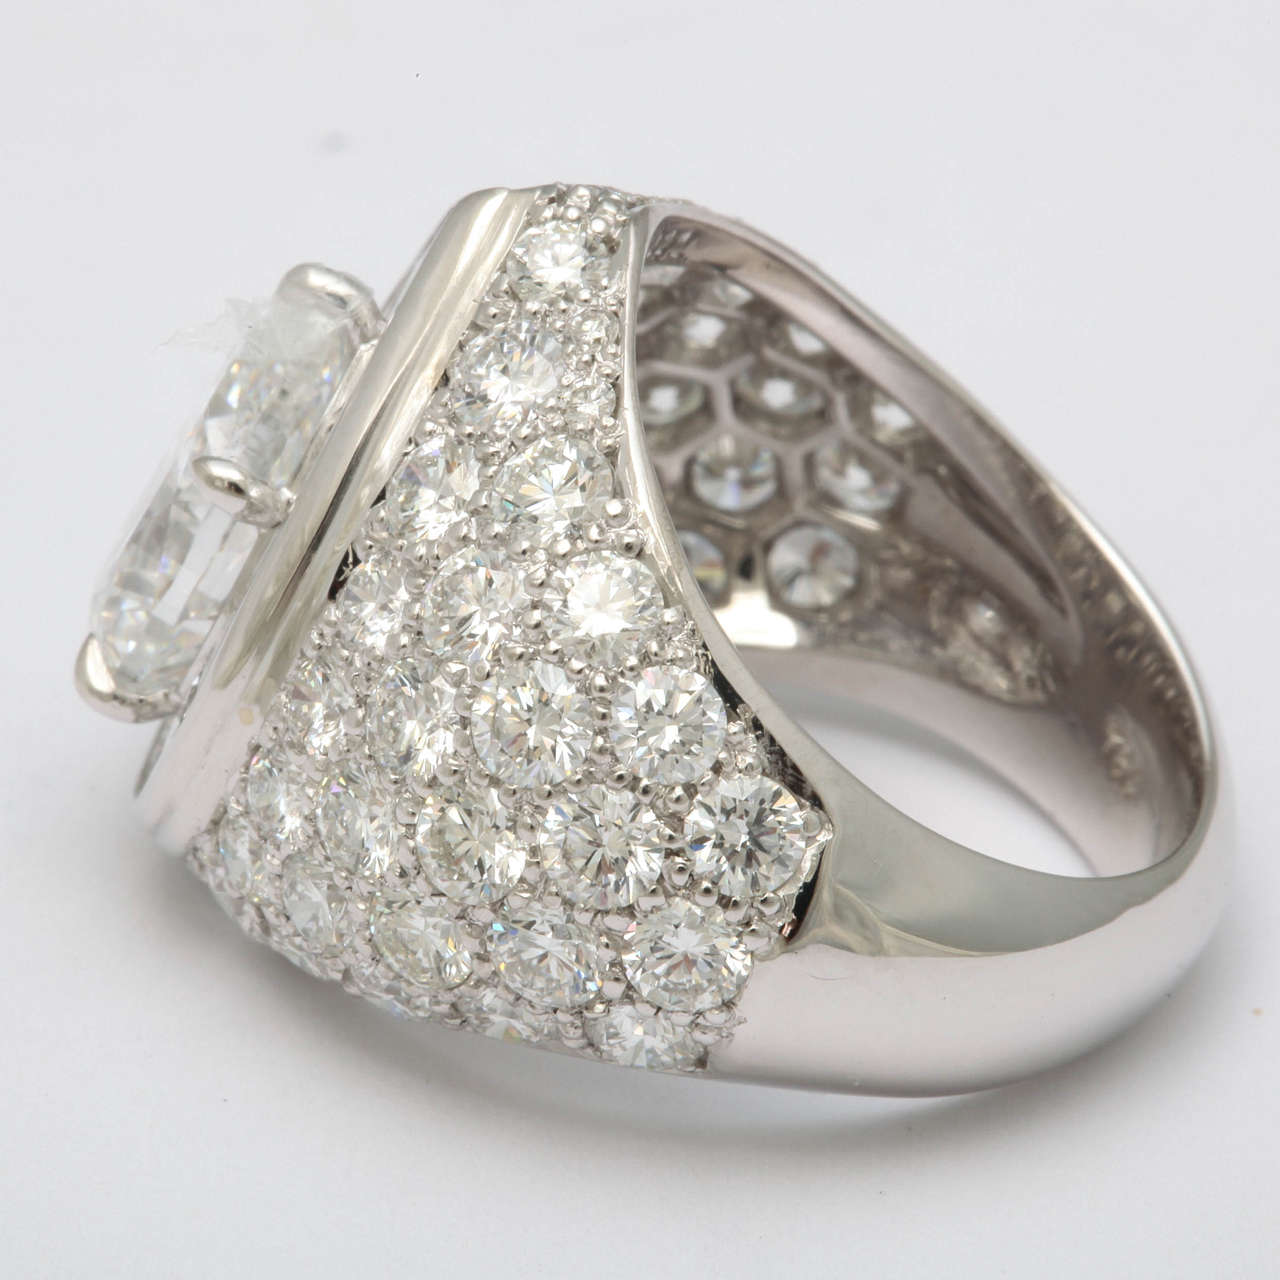 Magnificent Pear Shape Diamond RIng For Sale 1